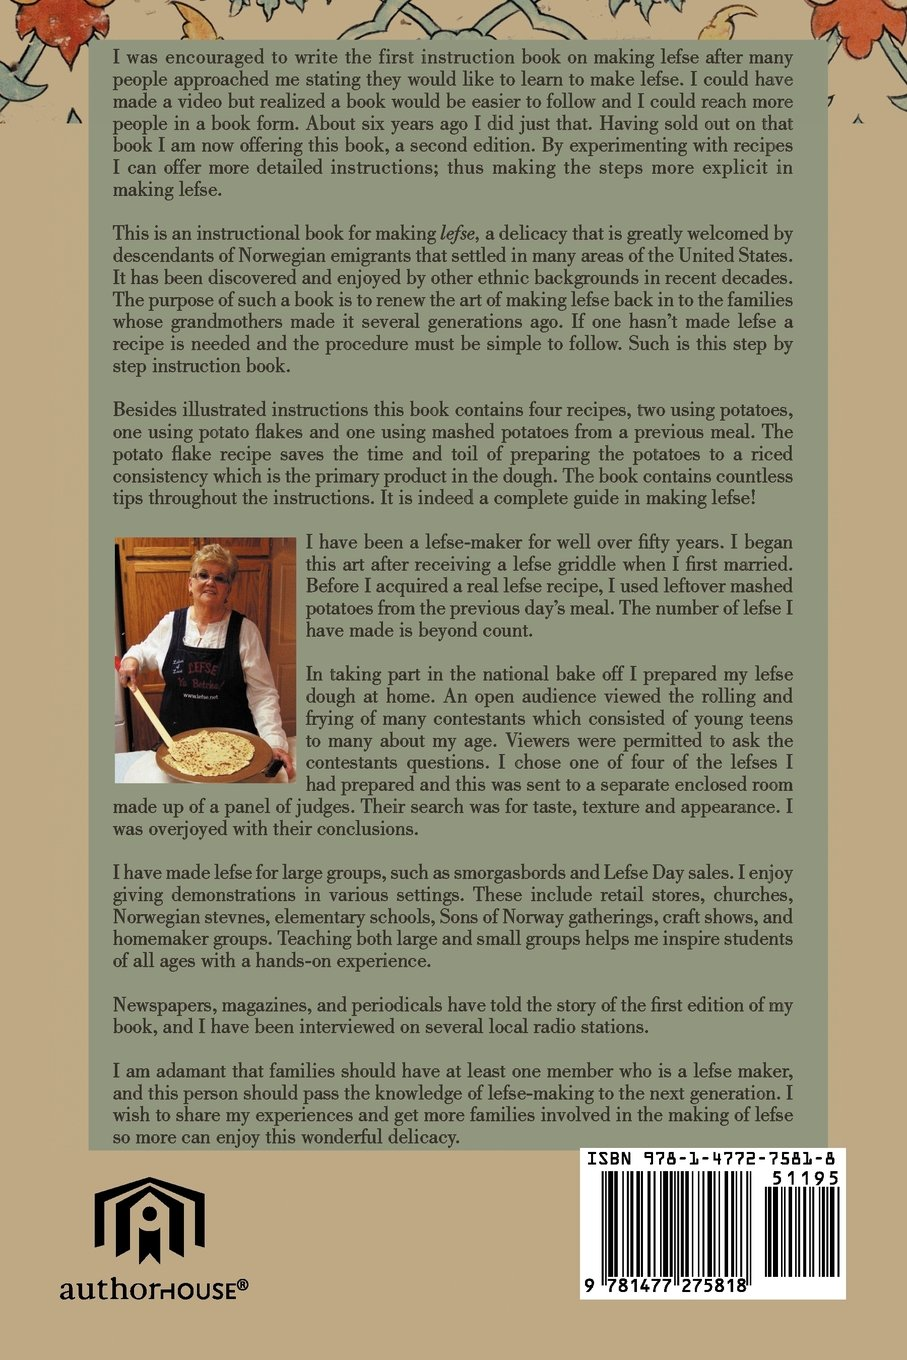 Step by Step Illustrated Instructions and Recipes for Making Lefse, 2nd  Edition: Darlene Sabo Ellefson: 9781477275818: Amazon.com: Books